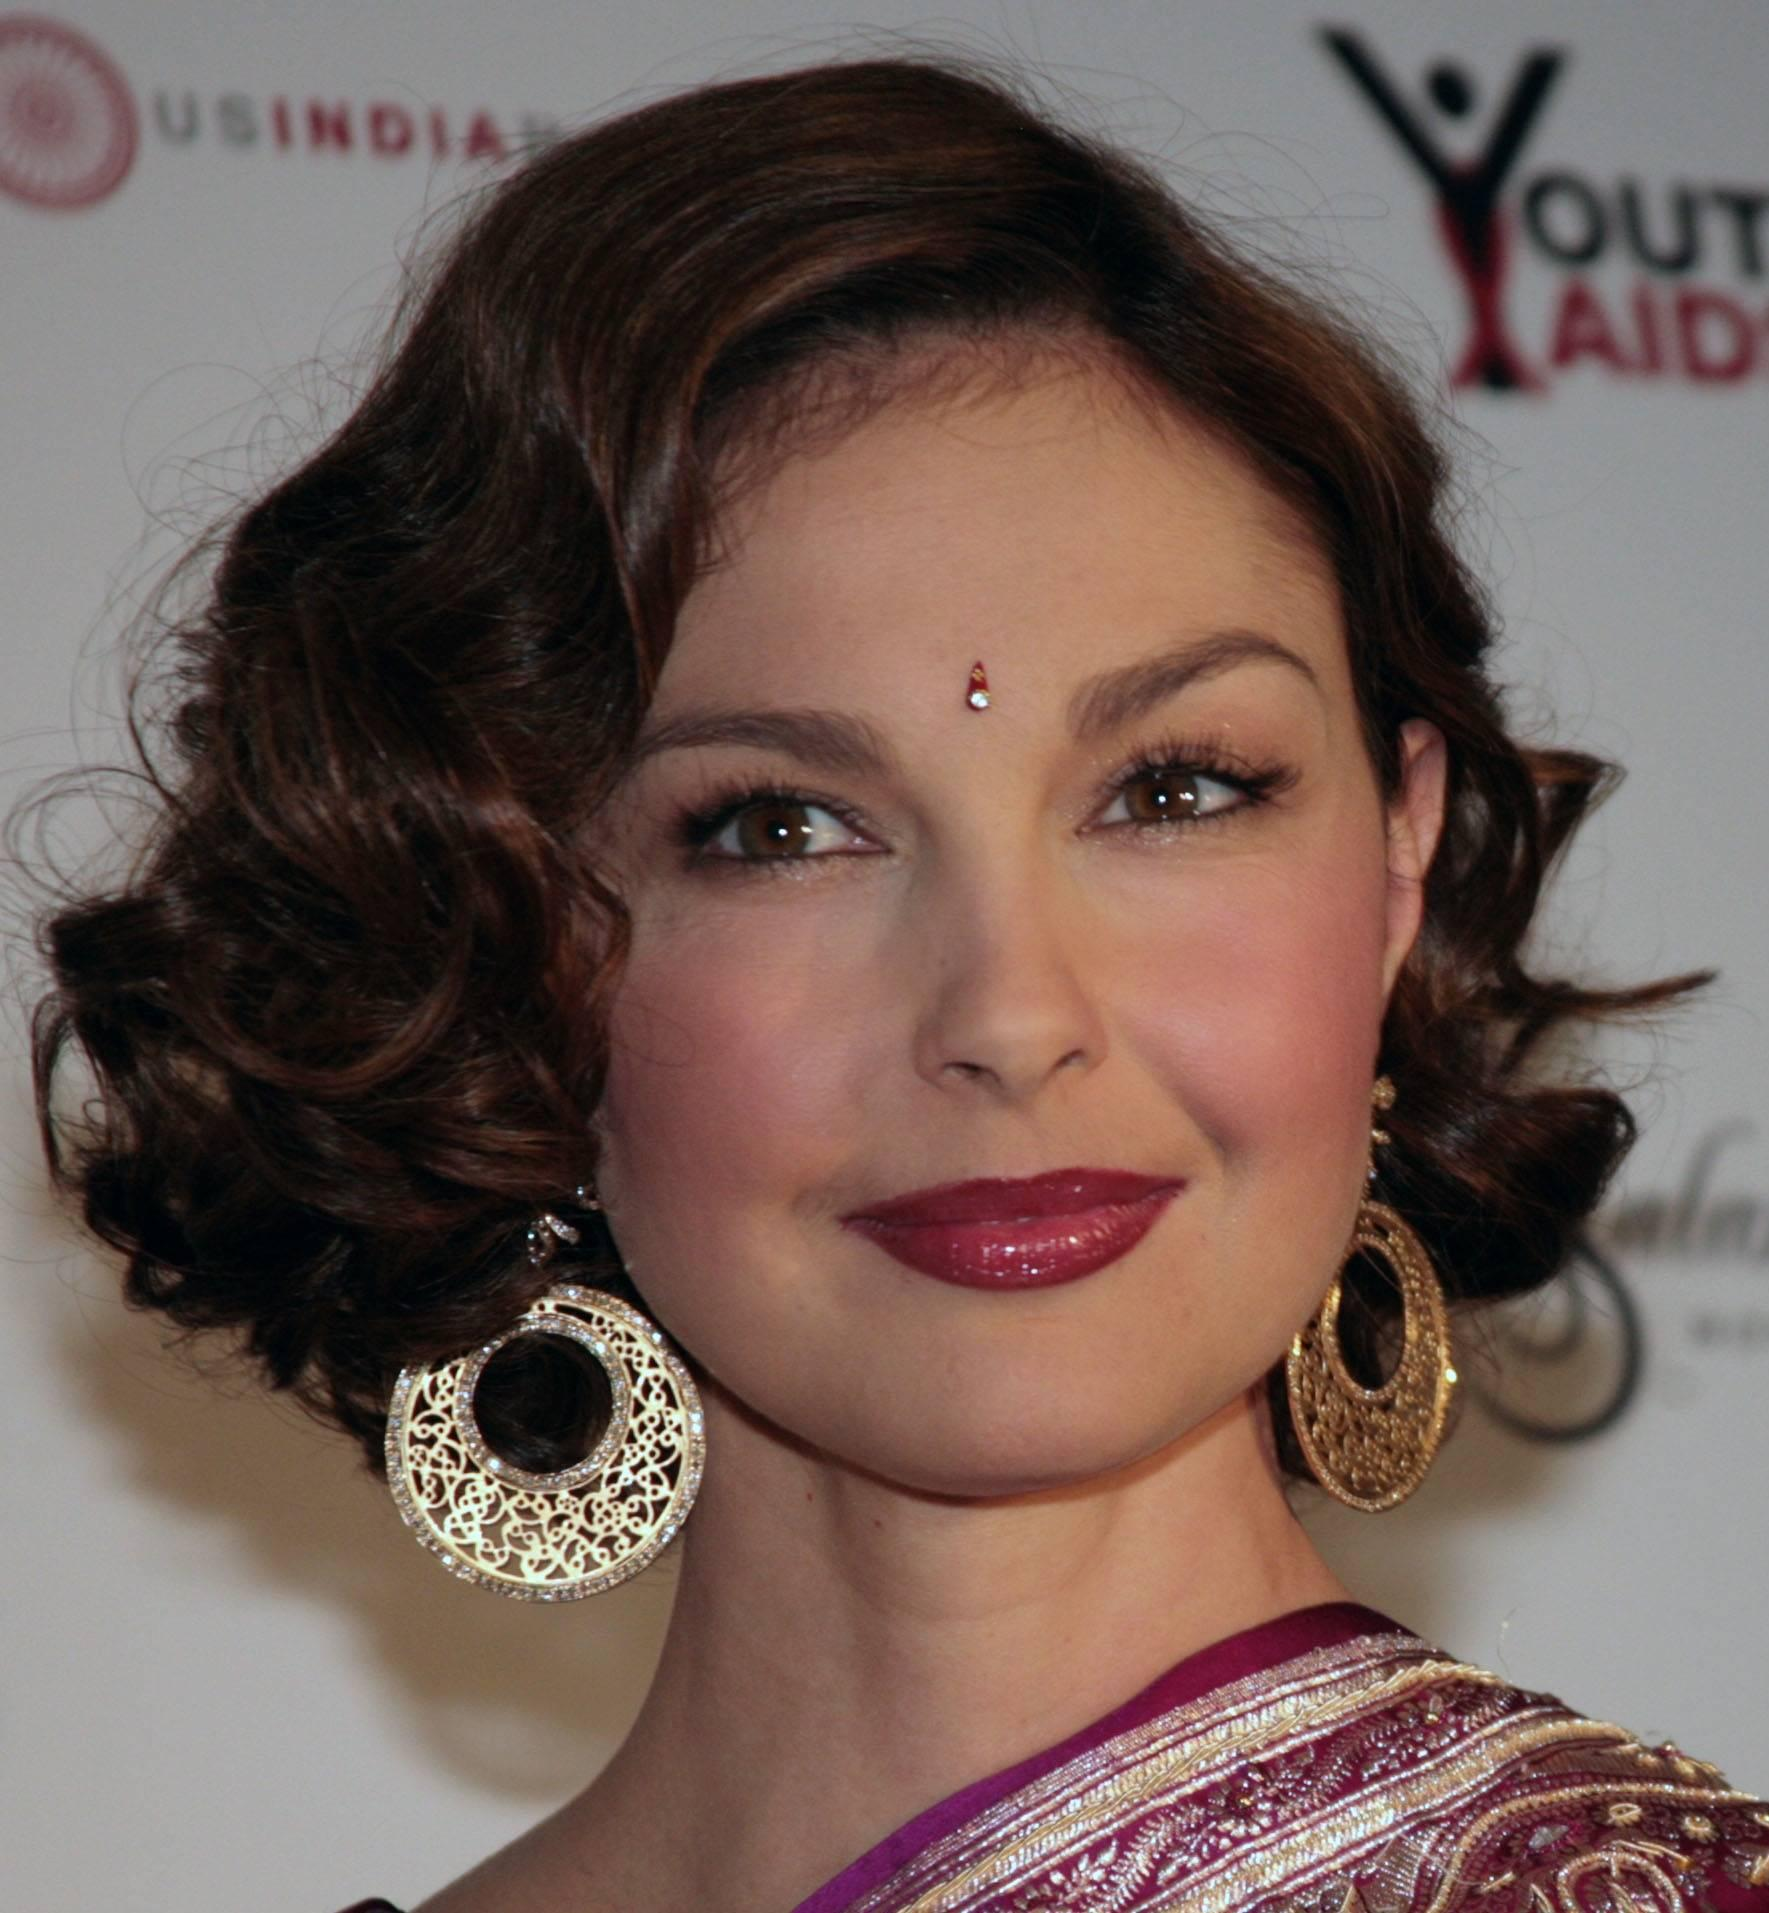 Google Image Result for http://0.tqn.com/d/beauty/1/0/h/5/1/ashley_judd.jpg